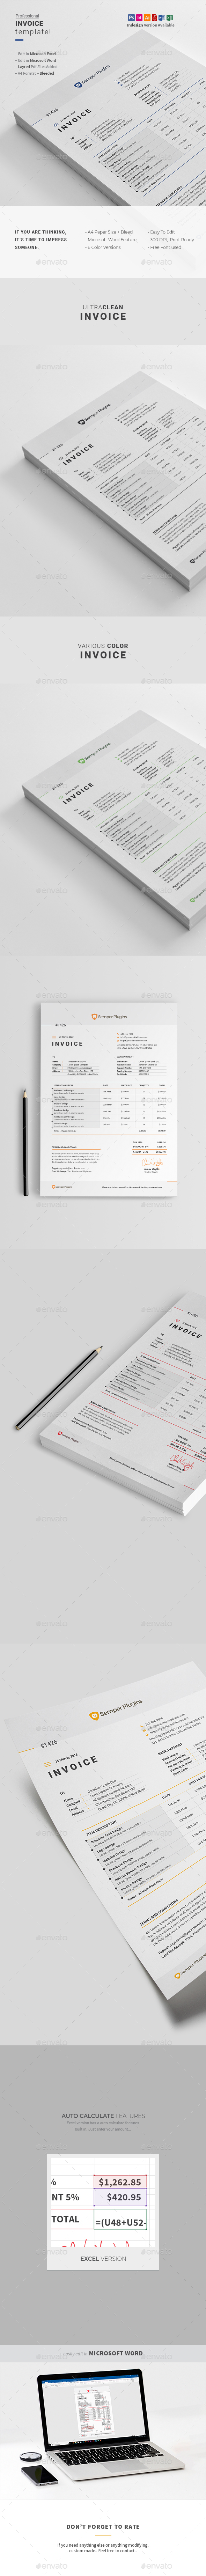 Invoice Template Graphics, Designs & Templates from GraphicRiver